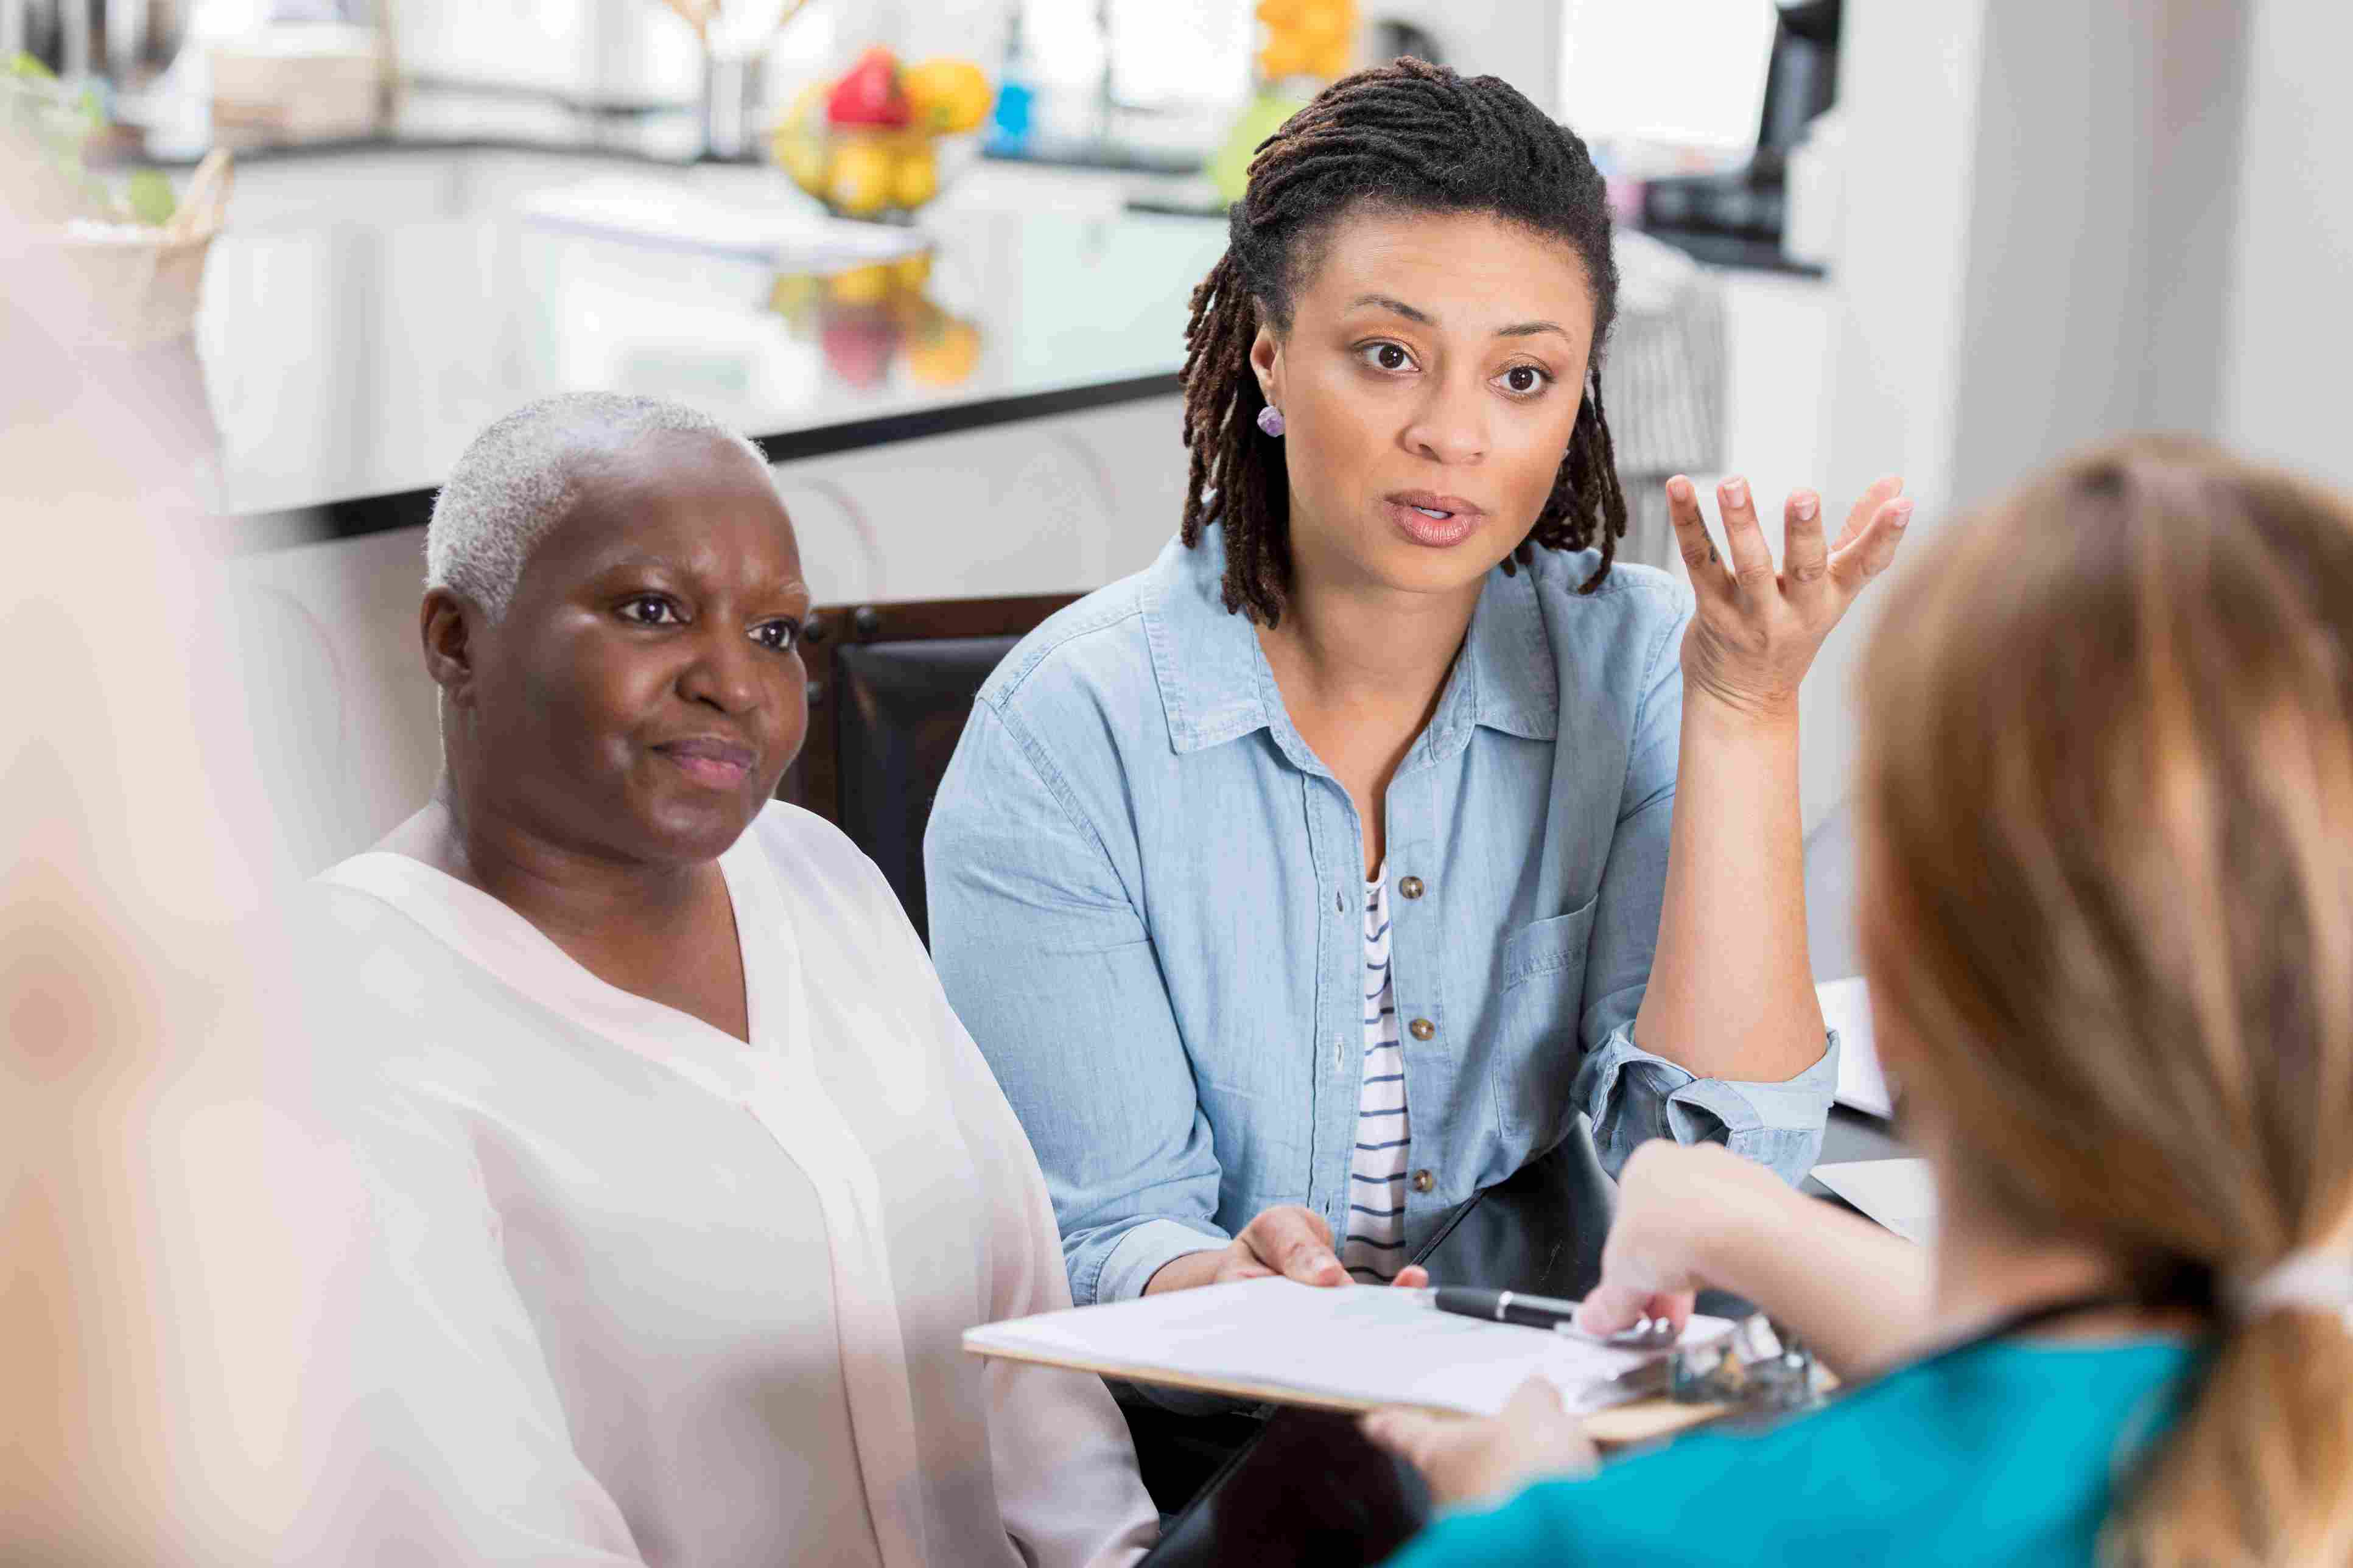 Concerned woman discusses her mother's health with healthcare professional